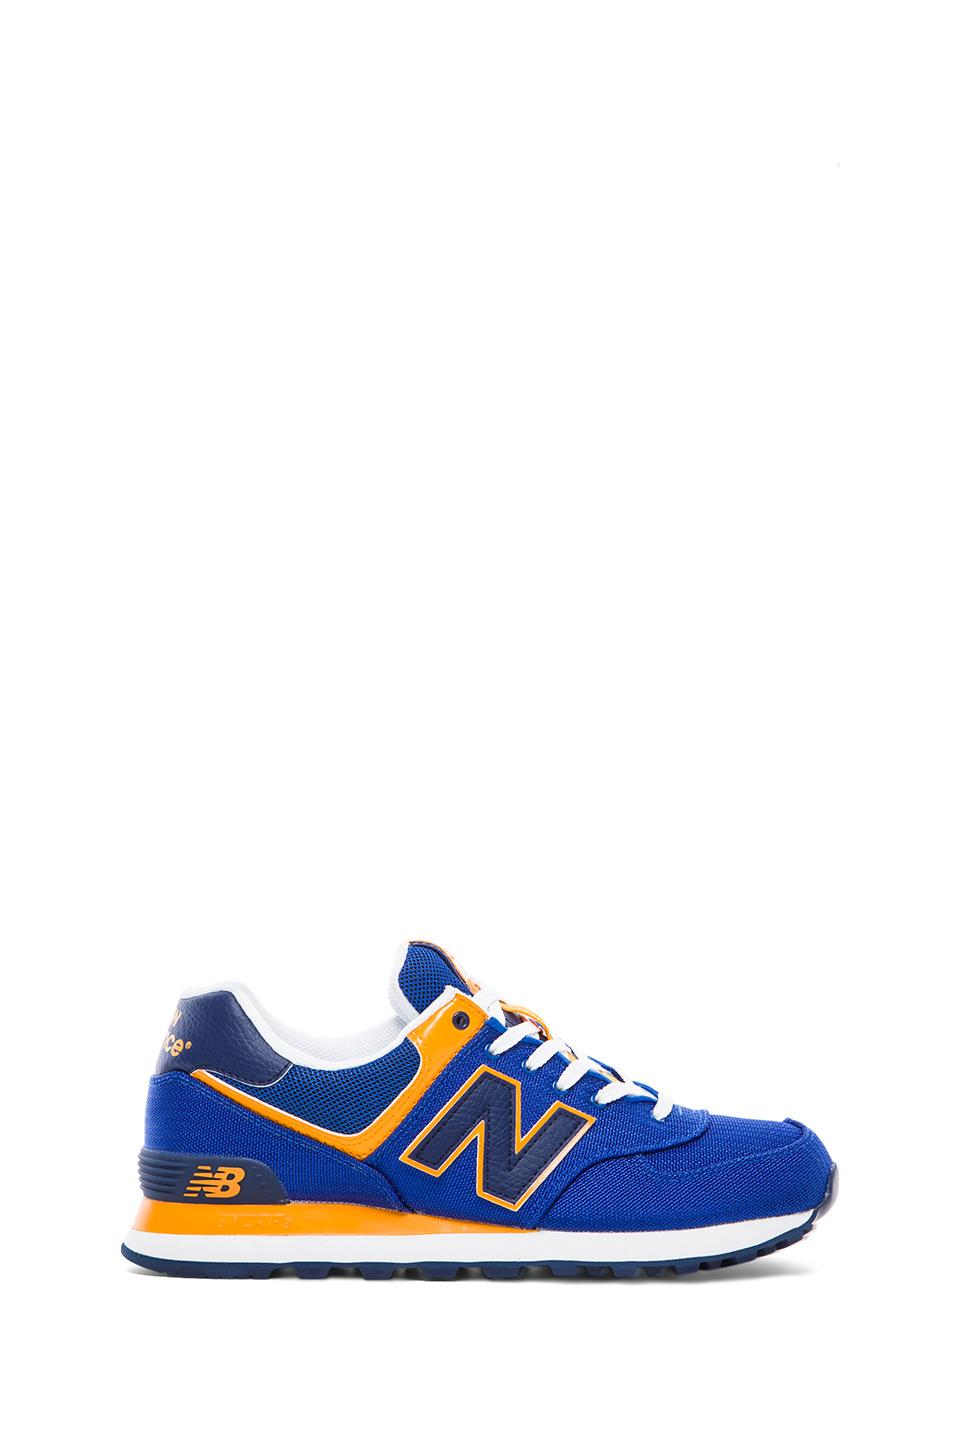 New Balance Passport ML574 in Blue & Yellow